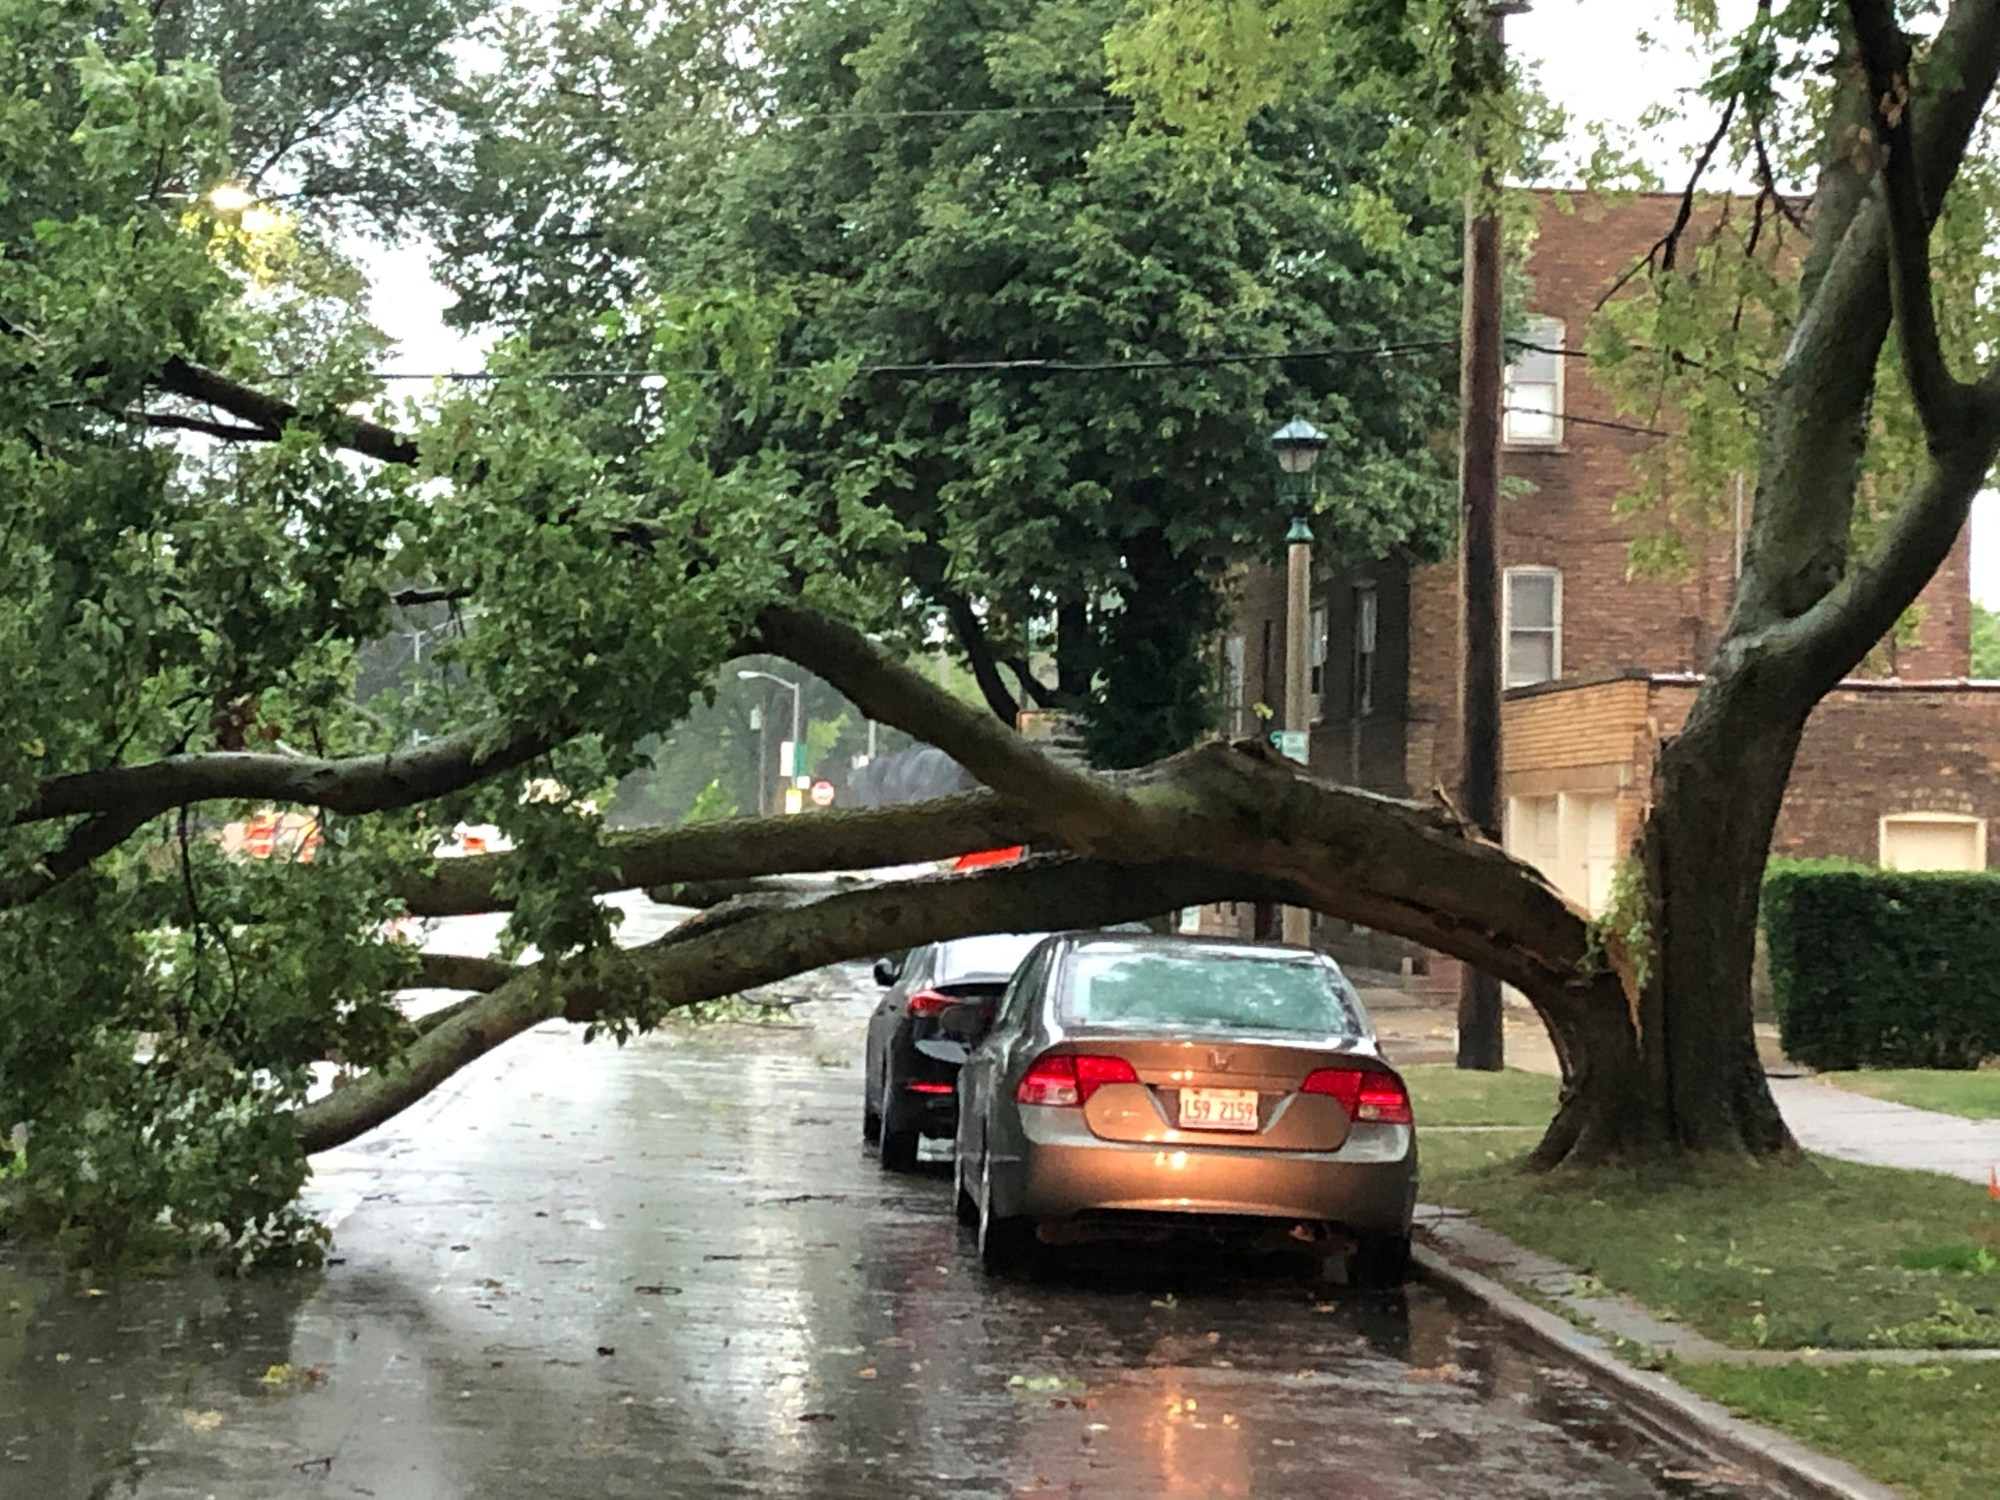 Part of a tree that had split at the trunk lies on a road in Oak Park, Ill., while also appearing not to have landed on a car parked on the road, after a severe storm moved through the Chicago area Monday, Aug. 10, 2020. (AP Photo/Dave Zelio)